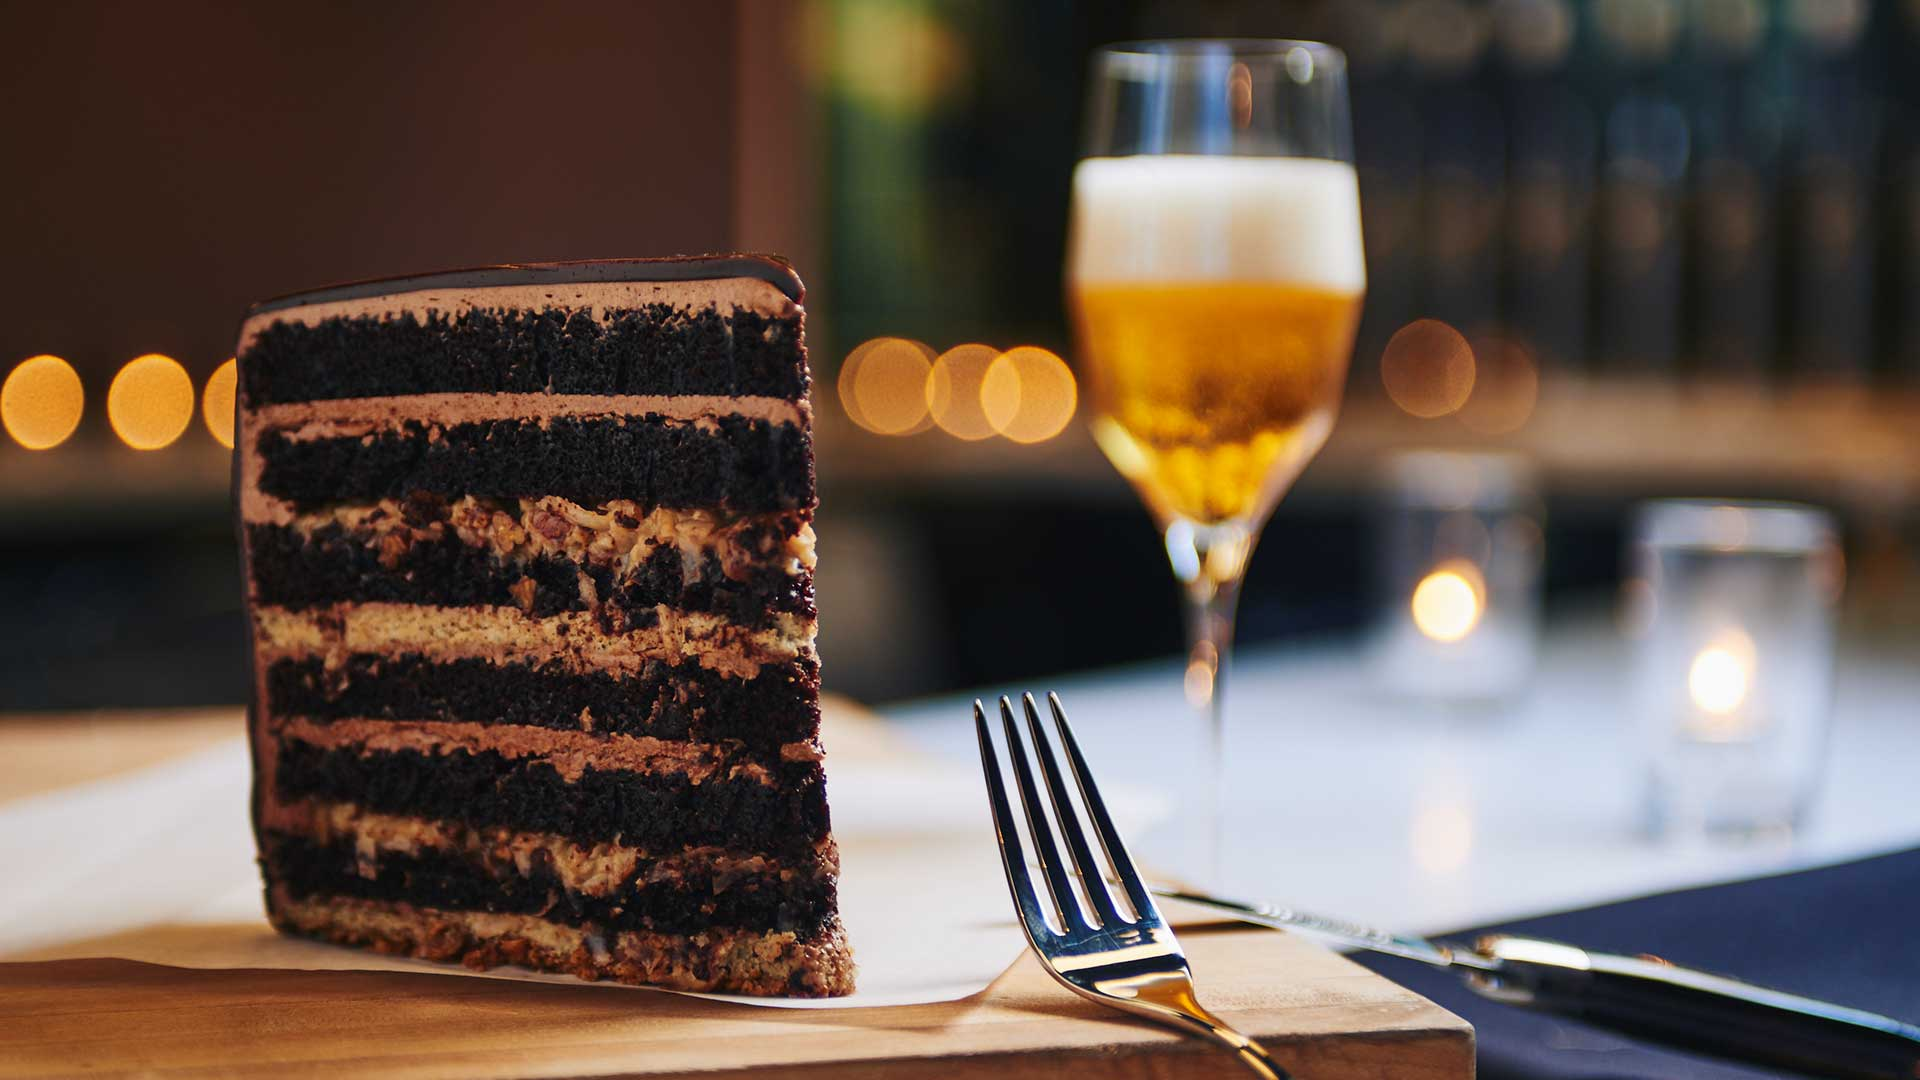 Cake and beer from Moody Tongue in Chicago, Illinois